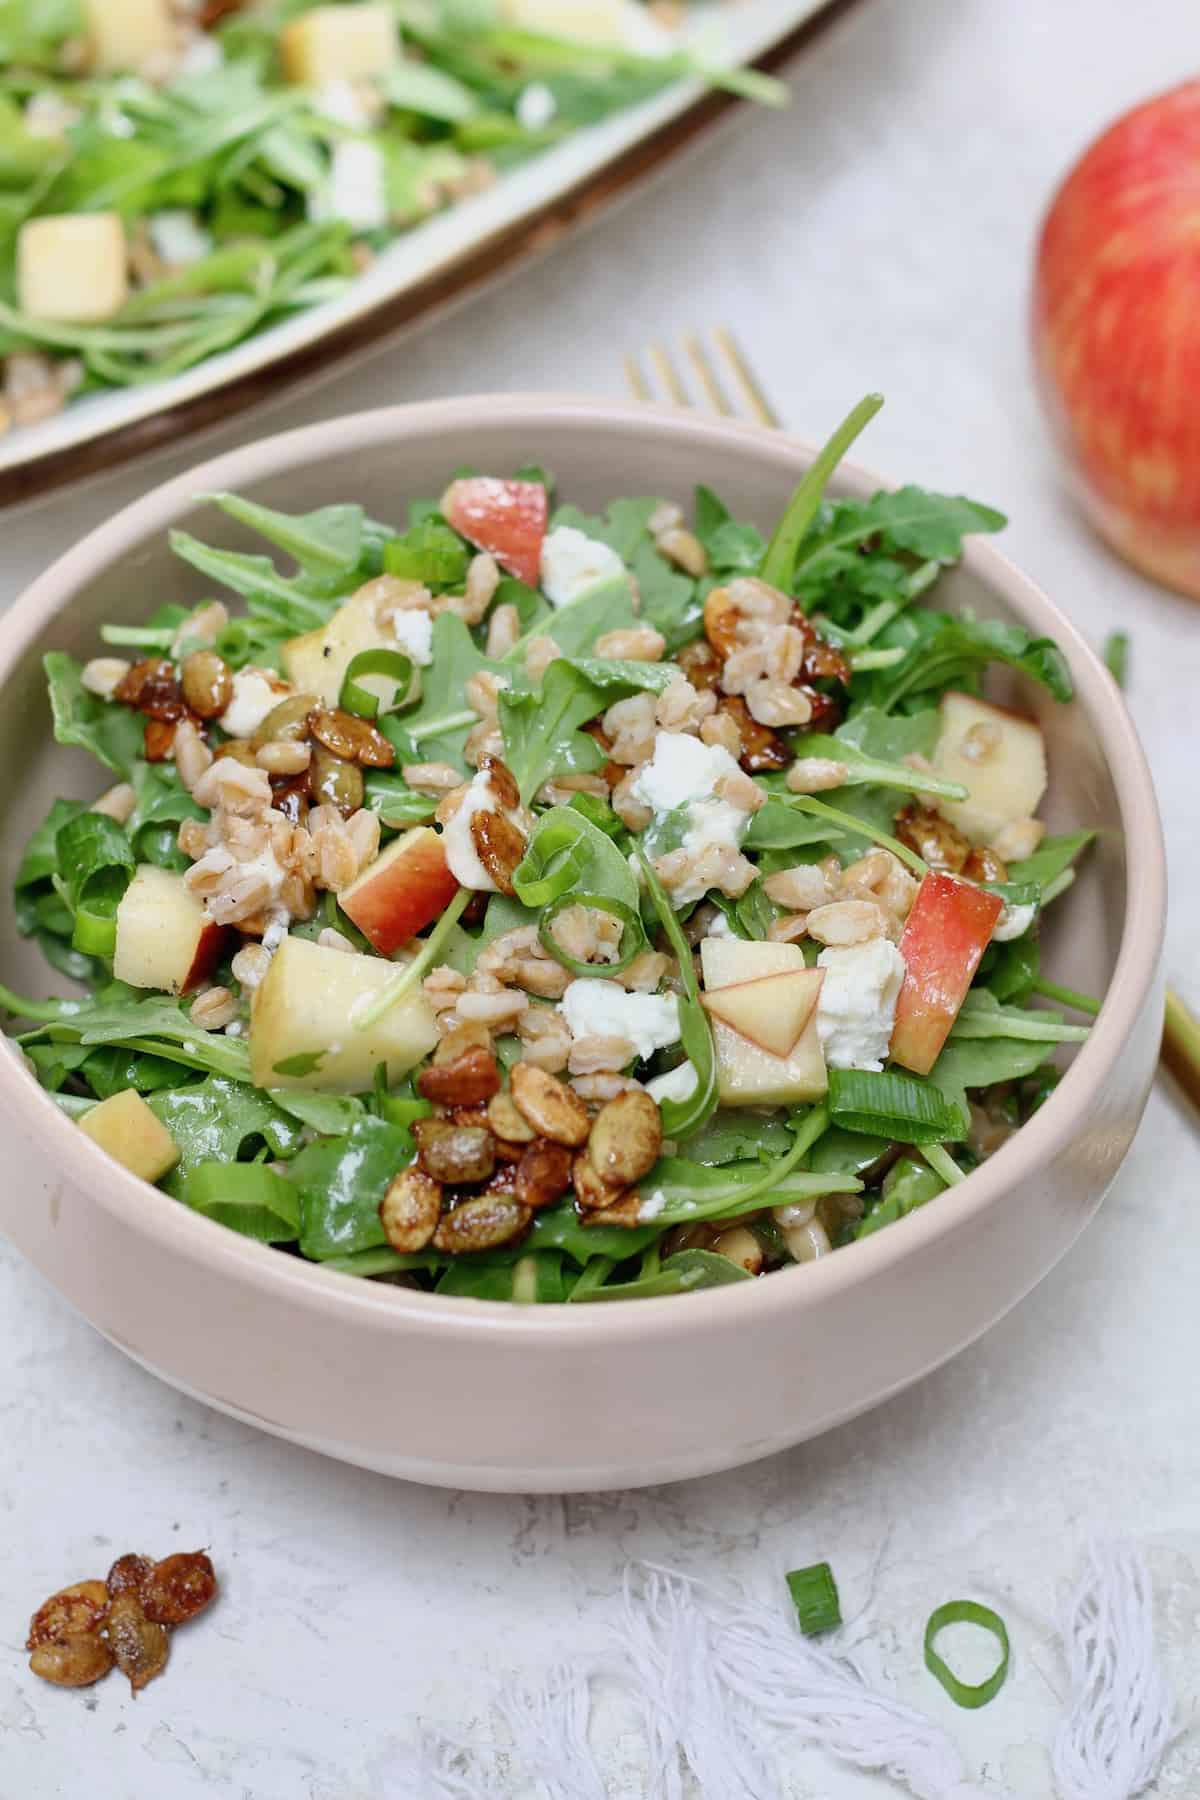 bowl of salad with apple